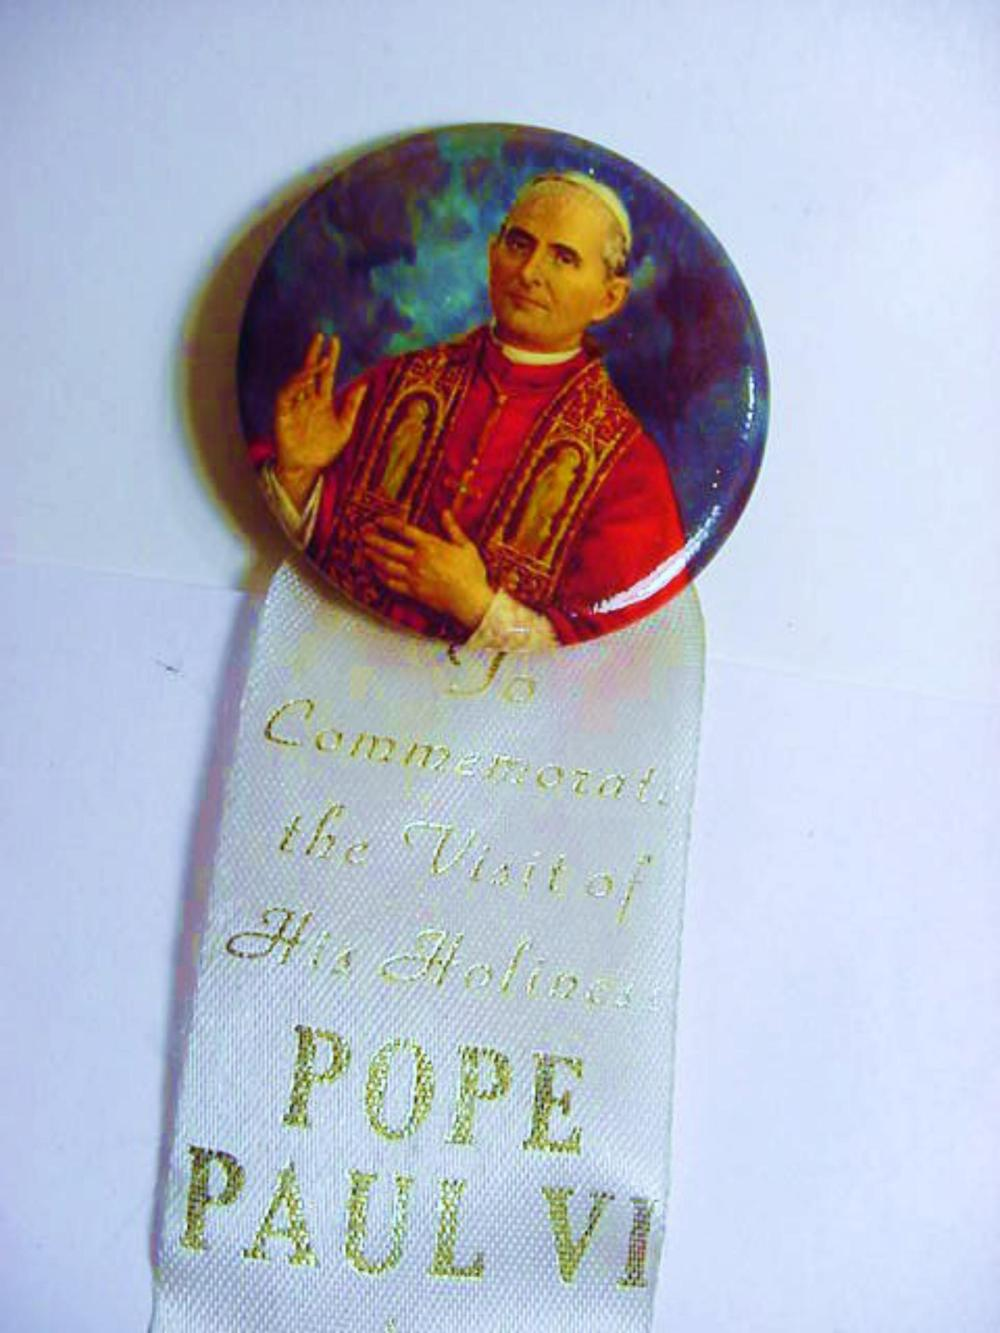 1965 POPE PAUL VI VISIT TO NEW YORK BUTTON